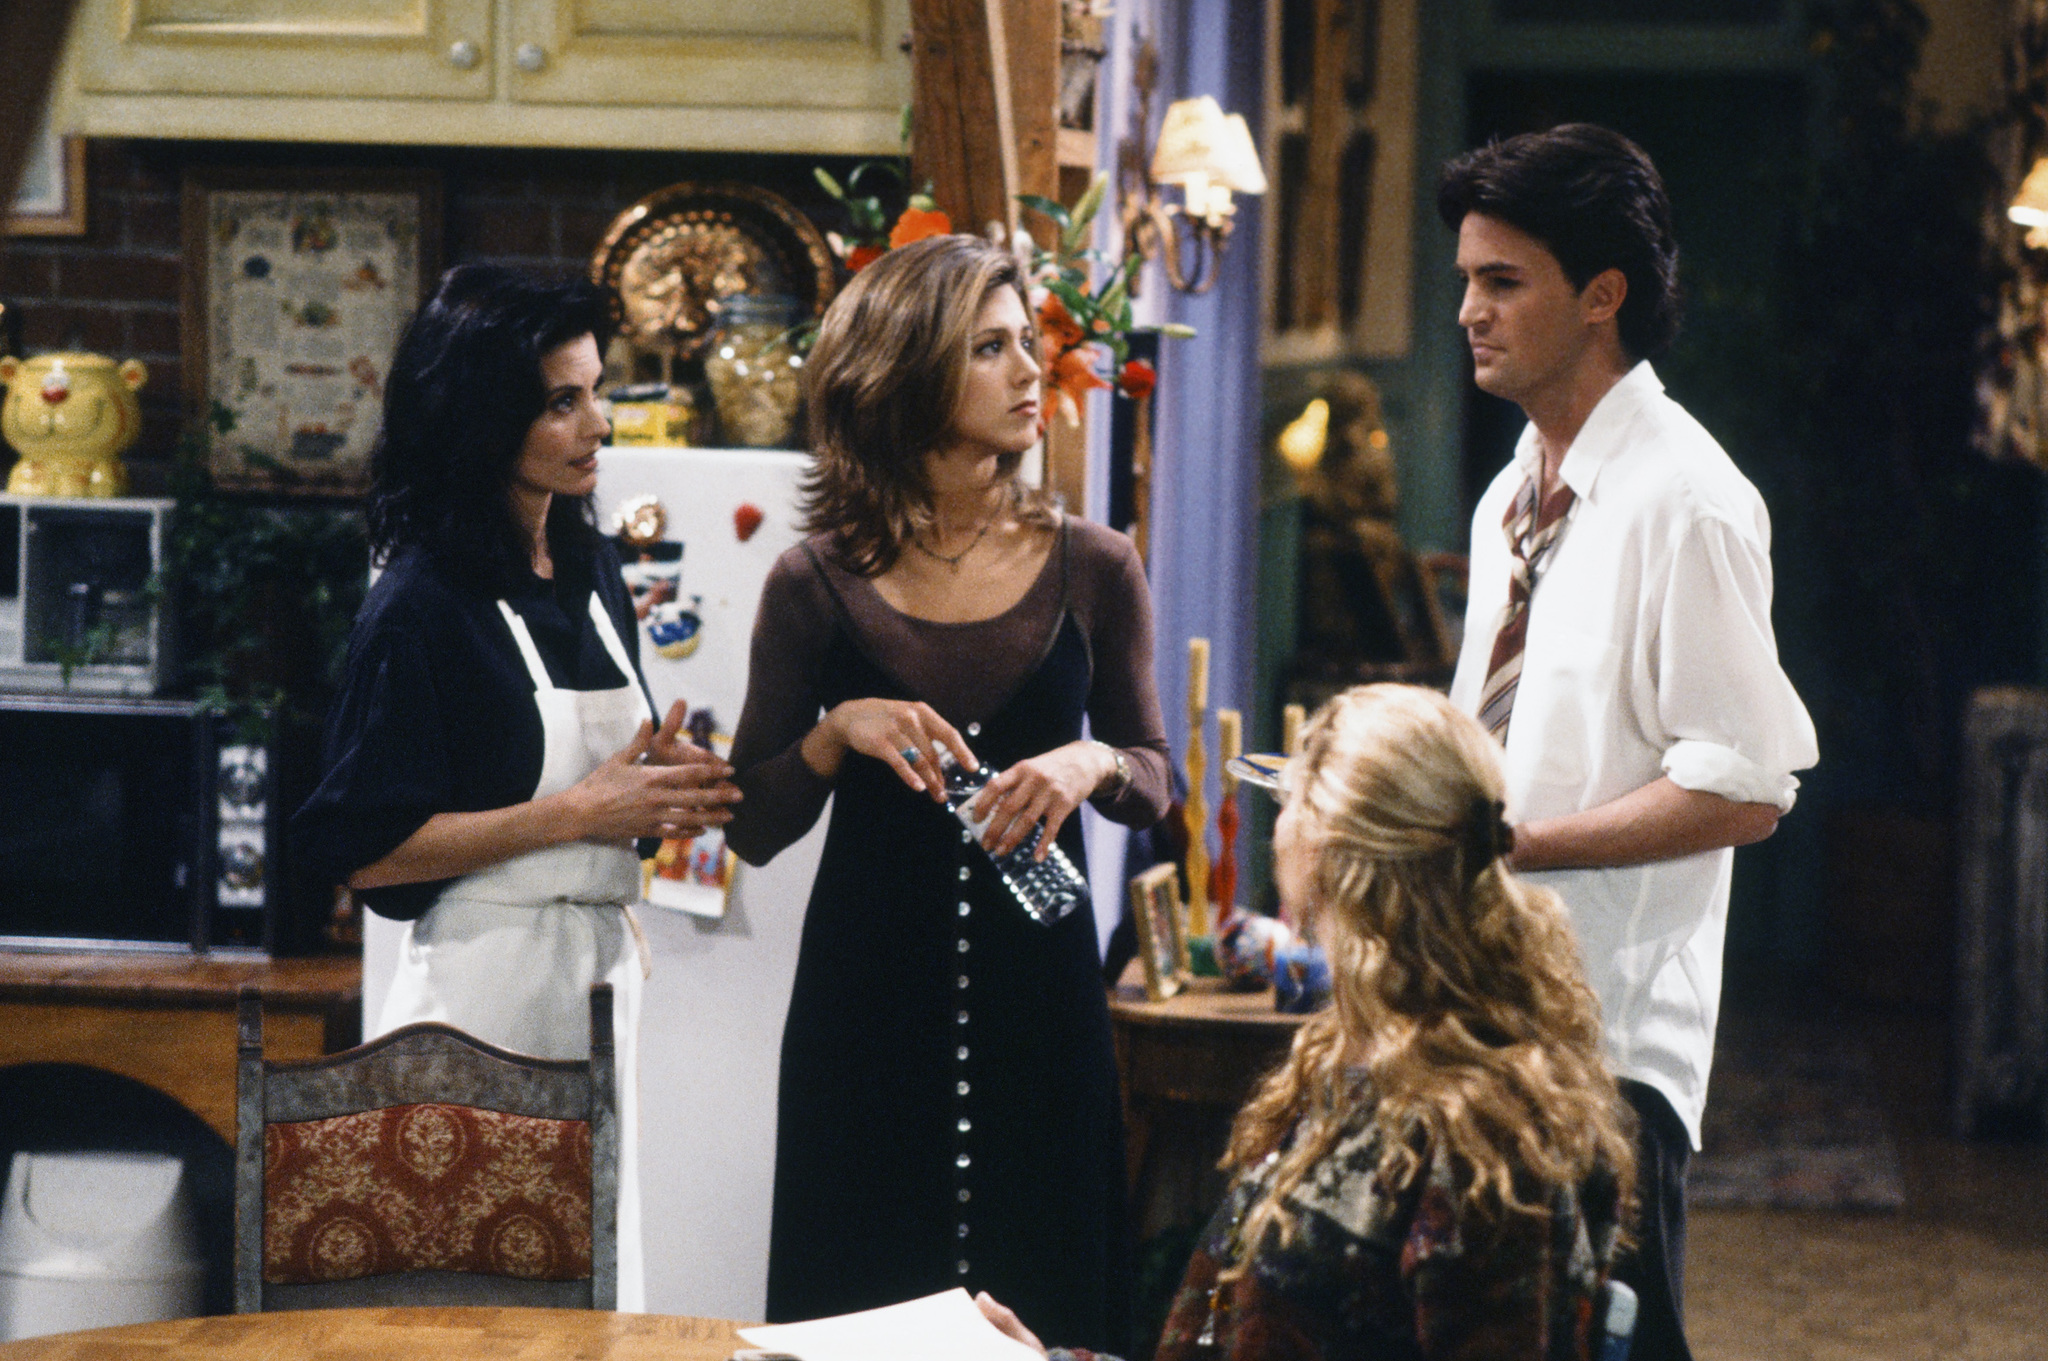 Friends: The One with the Stoned Guy | Season 1 | Episode 15